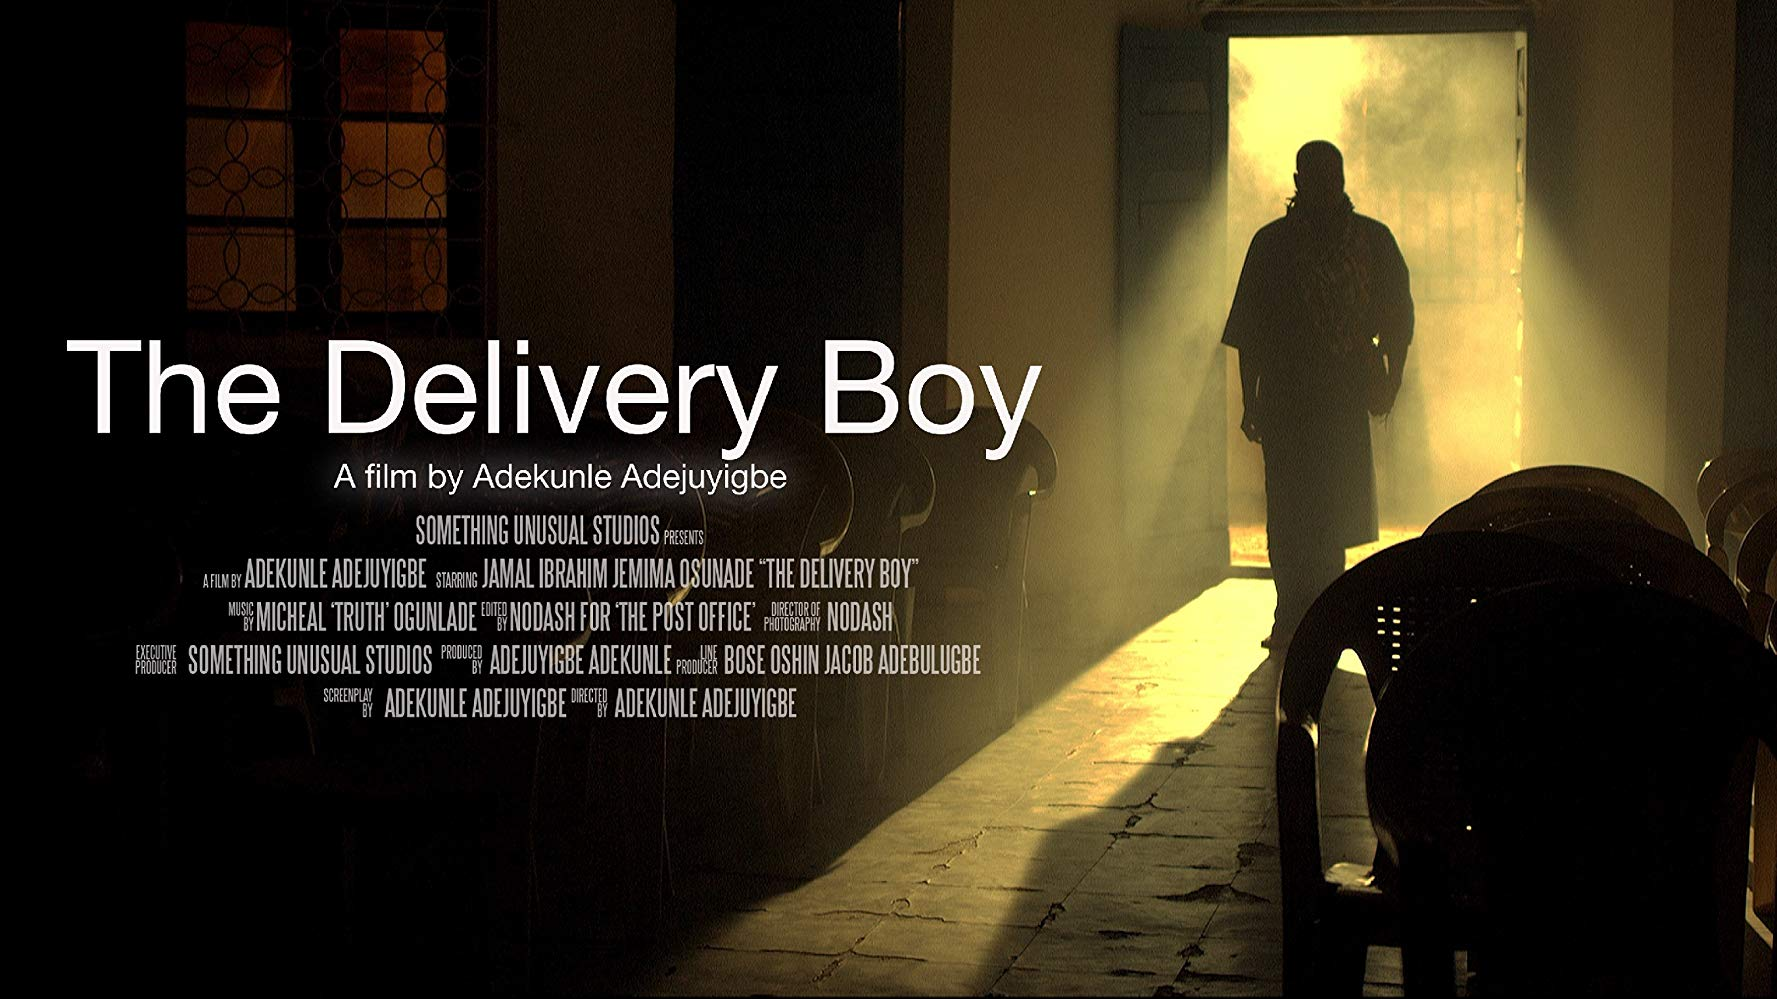 tdb 1 - Can Kunle Adejuyigbe ''The Delivery Boy'' Deliver at the NGN Box Office?